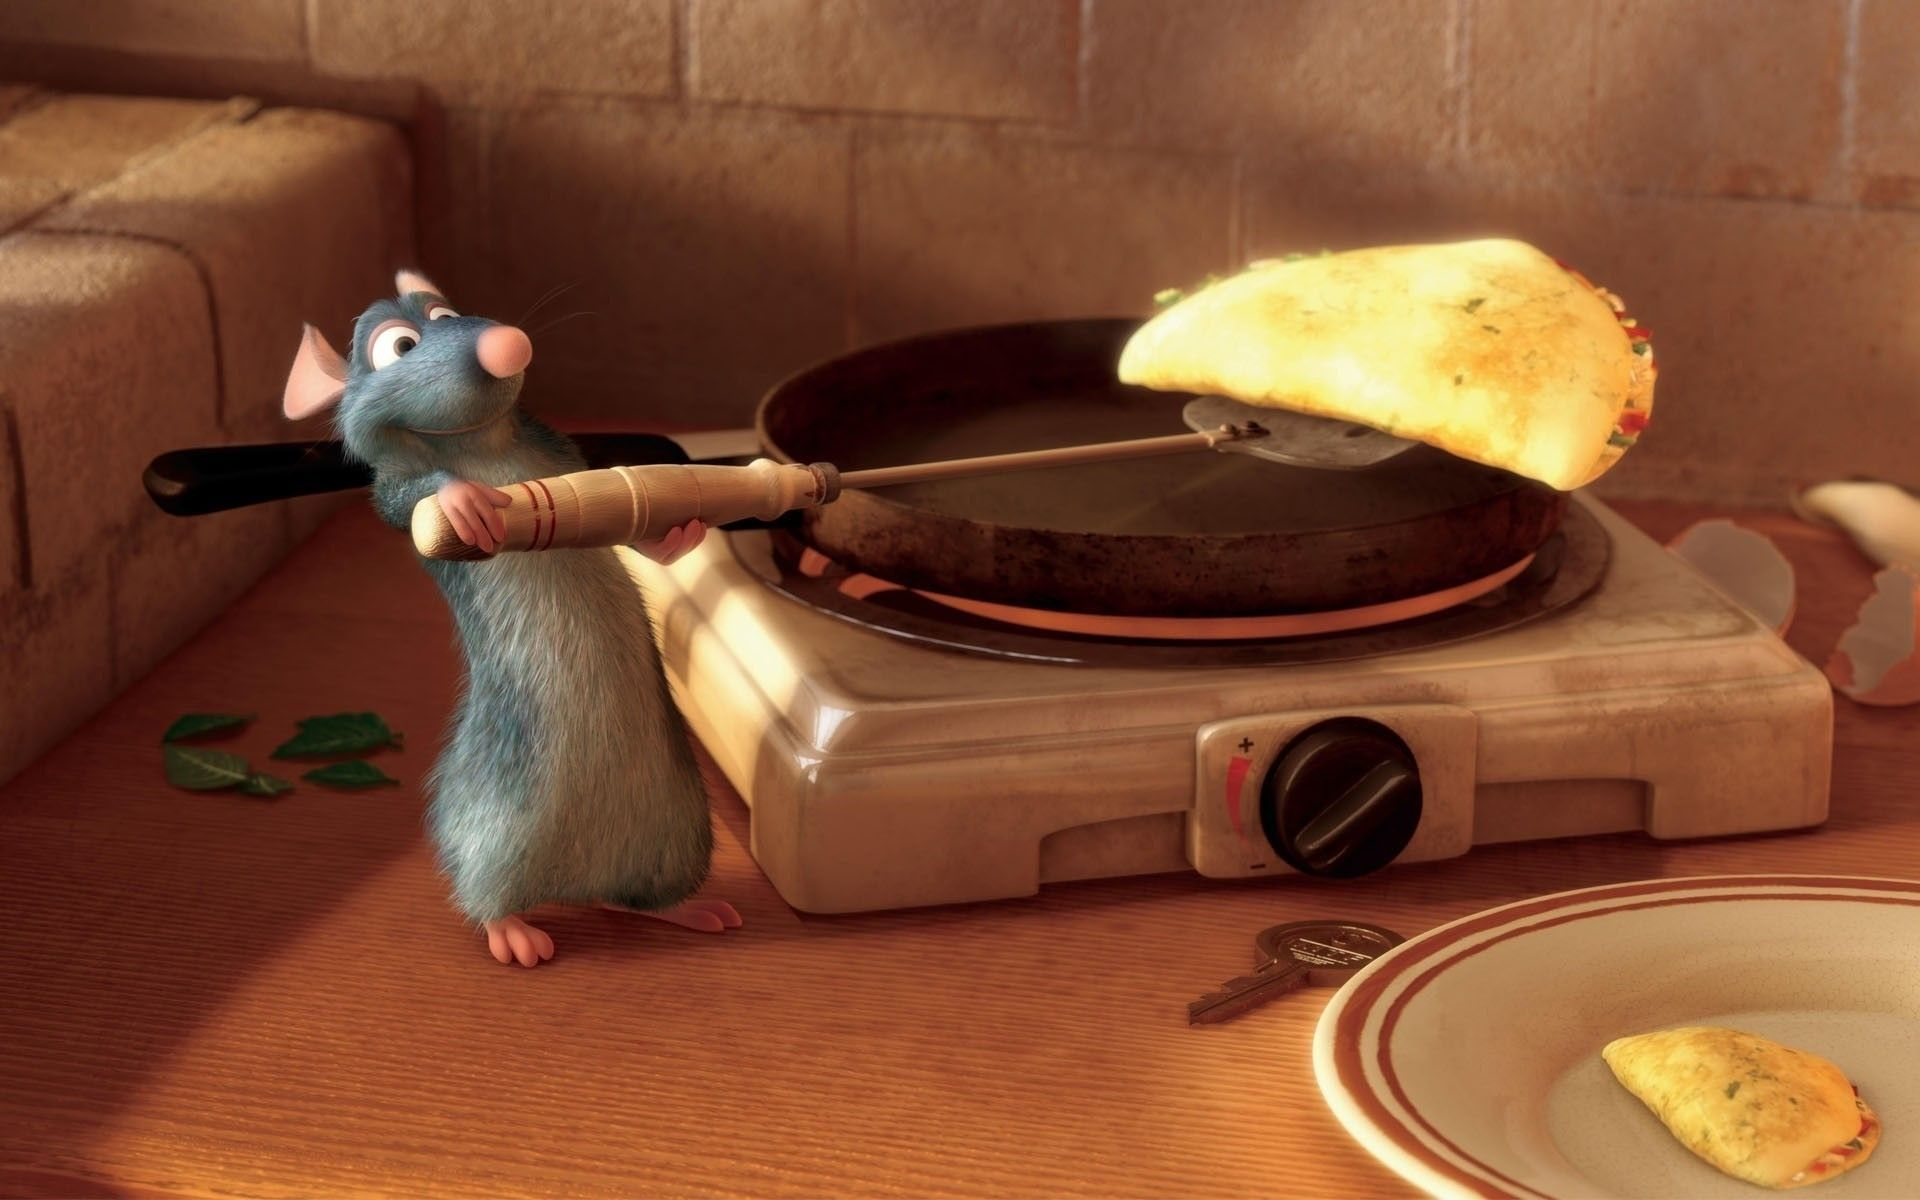 Cooking Wallpapers 2 Cards Twd Pixar Ratatouille Movies